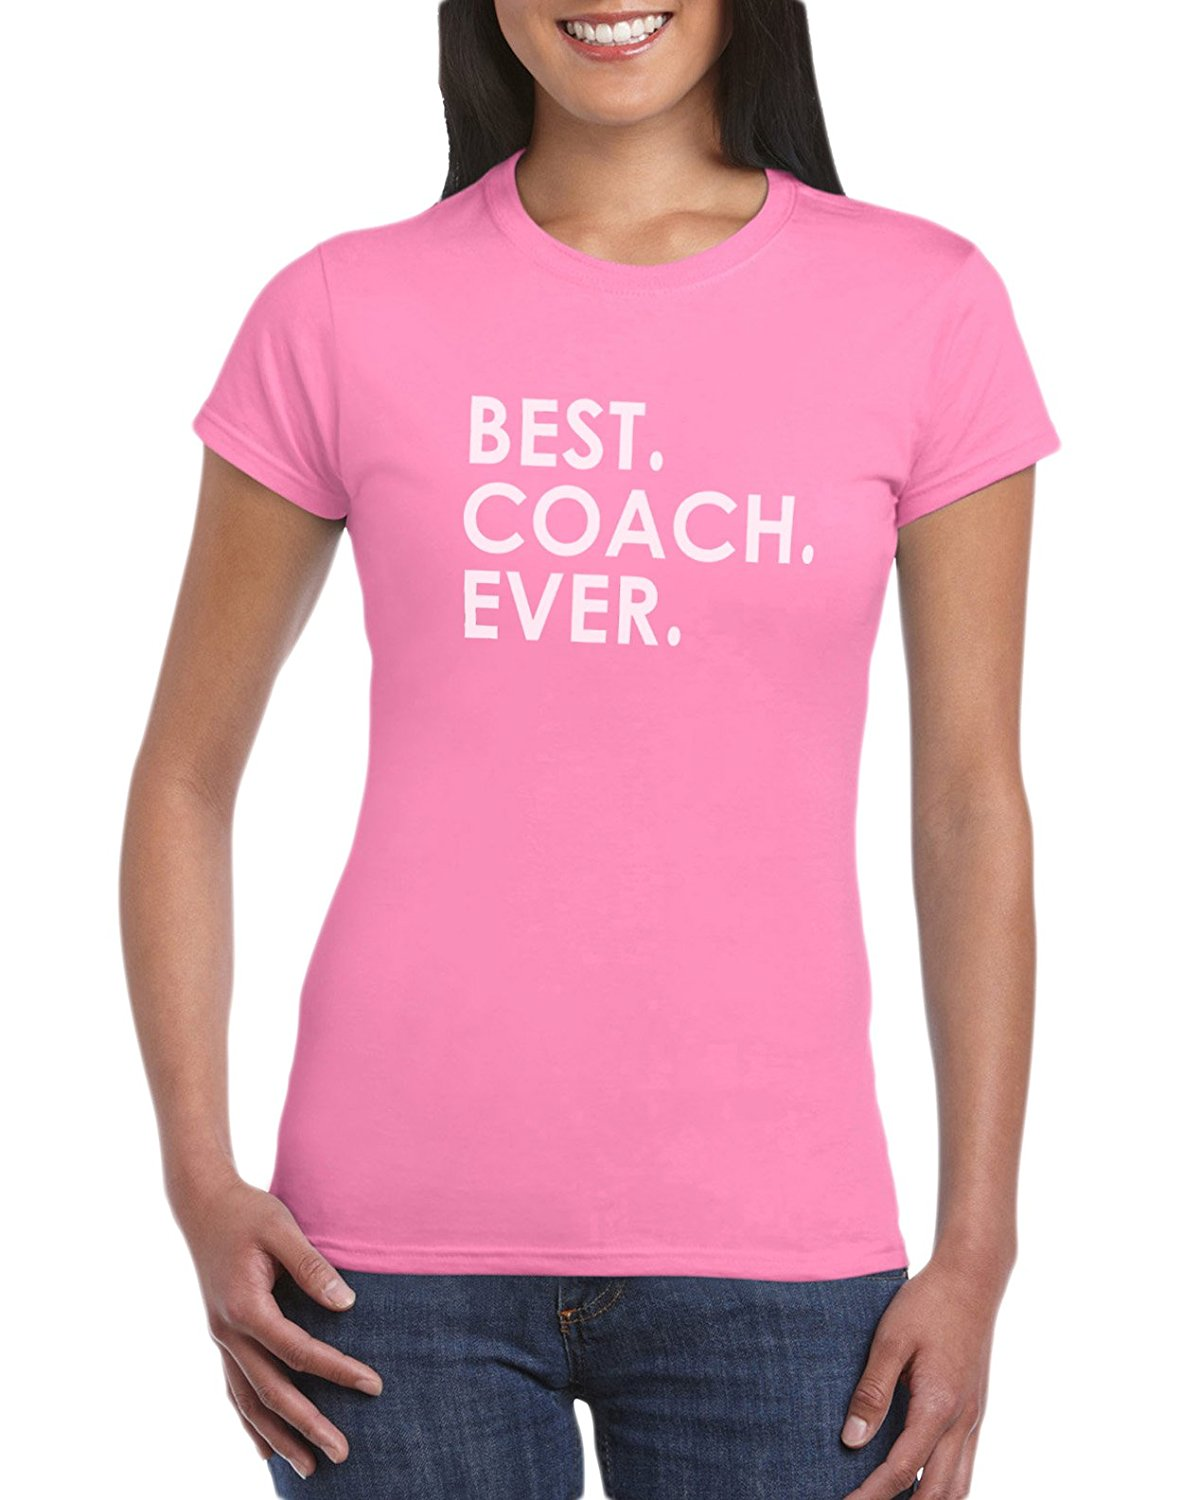 The Red Garnet Best Coach Ever T Shirt Gift Idea For Ladies Sports Mom